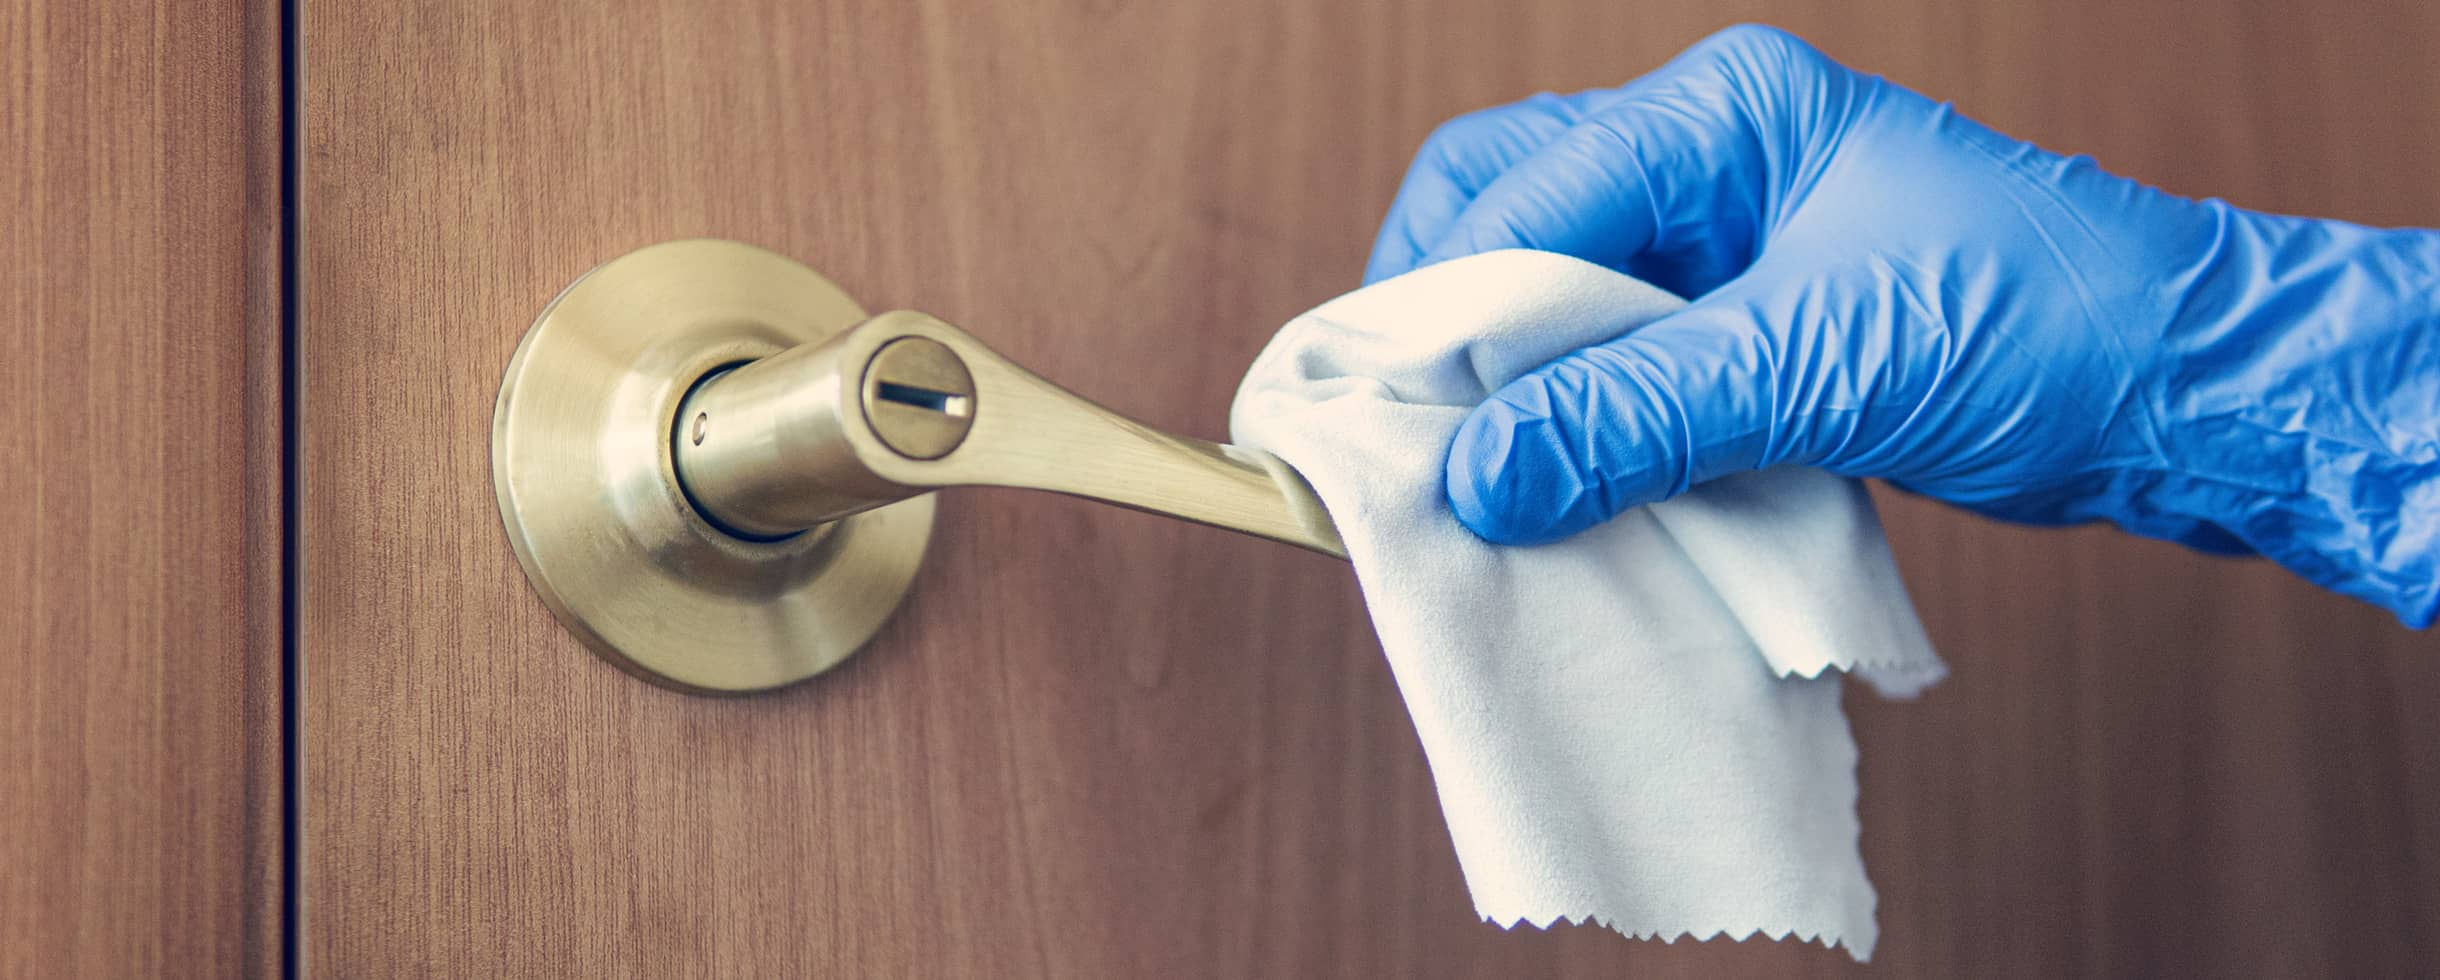 Person wearing a rubber glove disinfecting a door handle